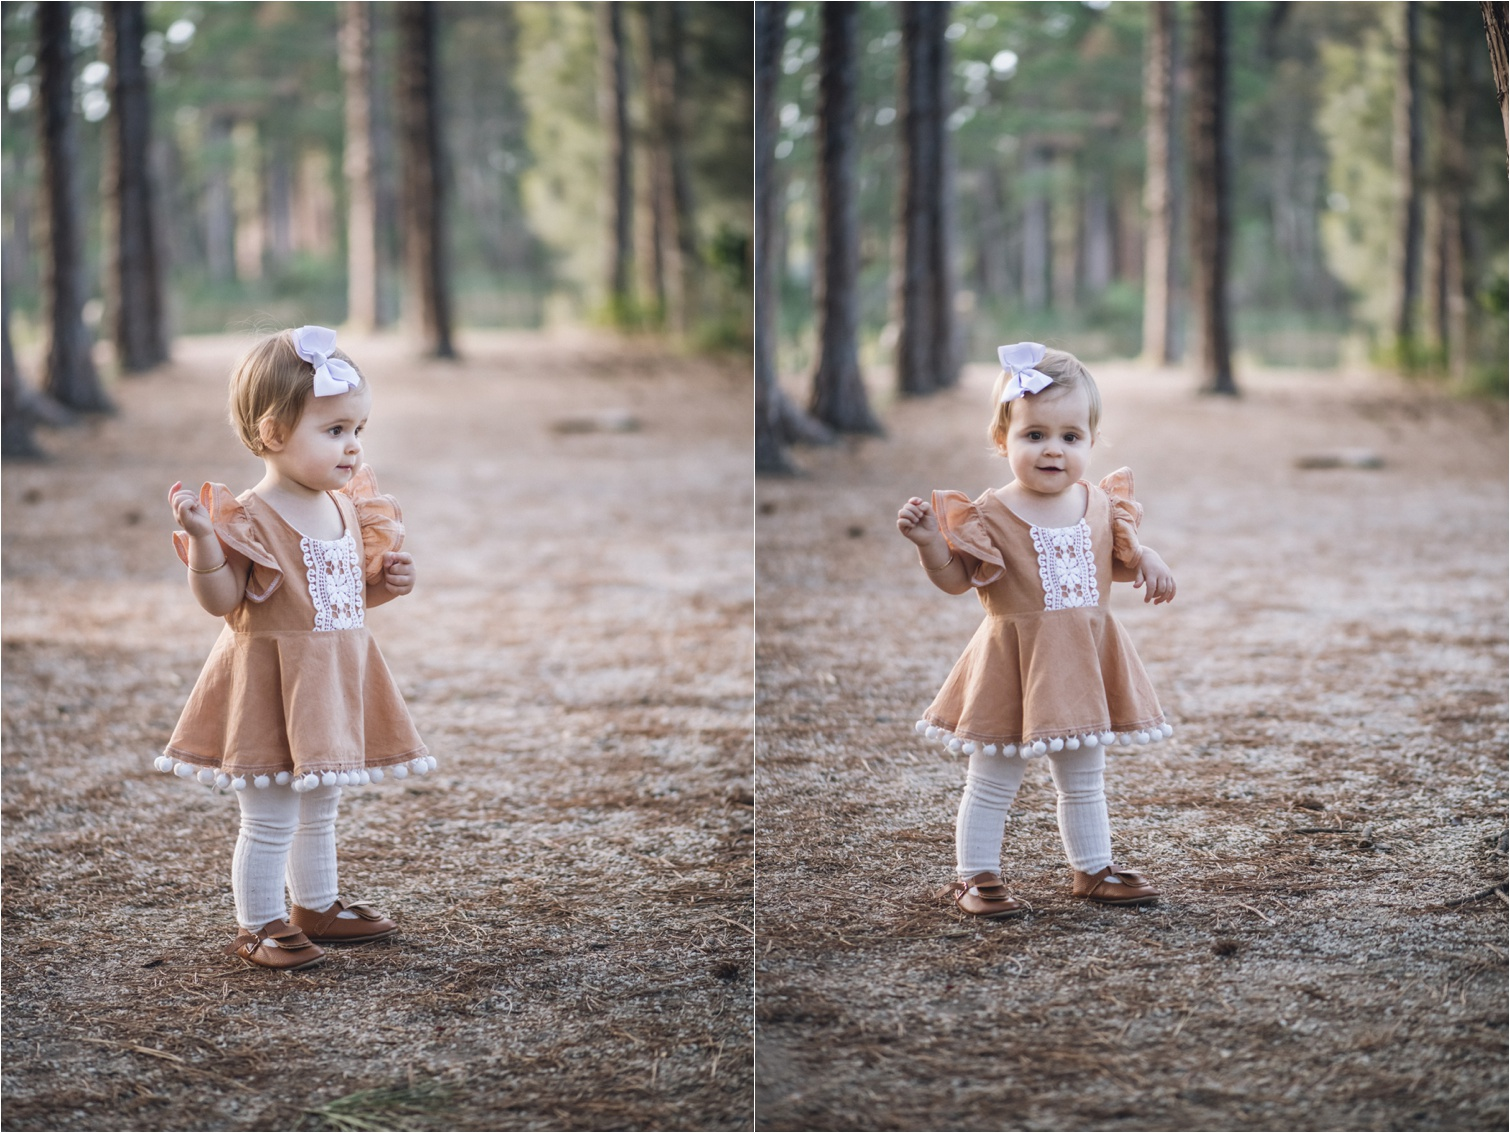 Pine_forest_family_photography_shoot - Gold Coast Family Photographer_0005.jpg